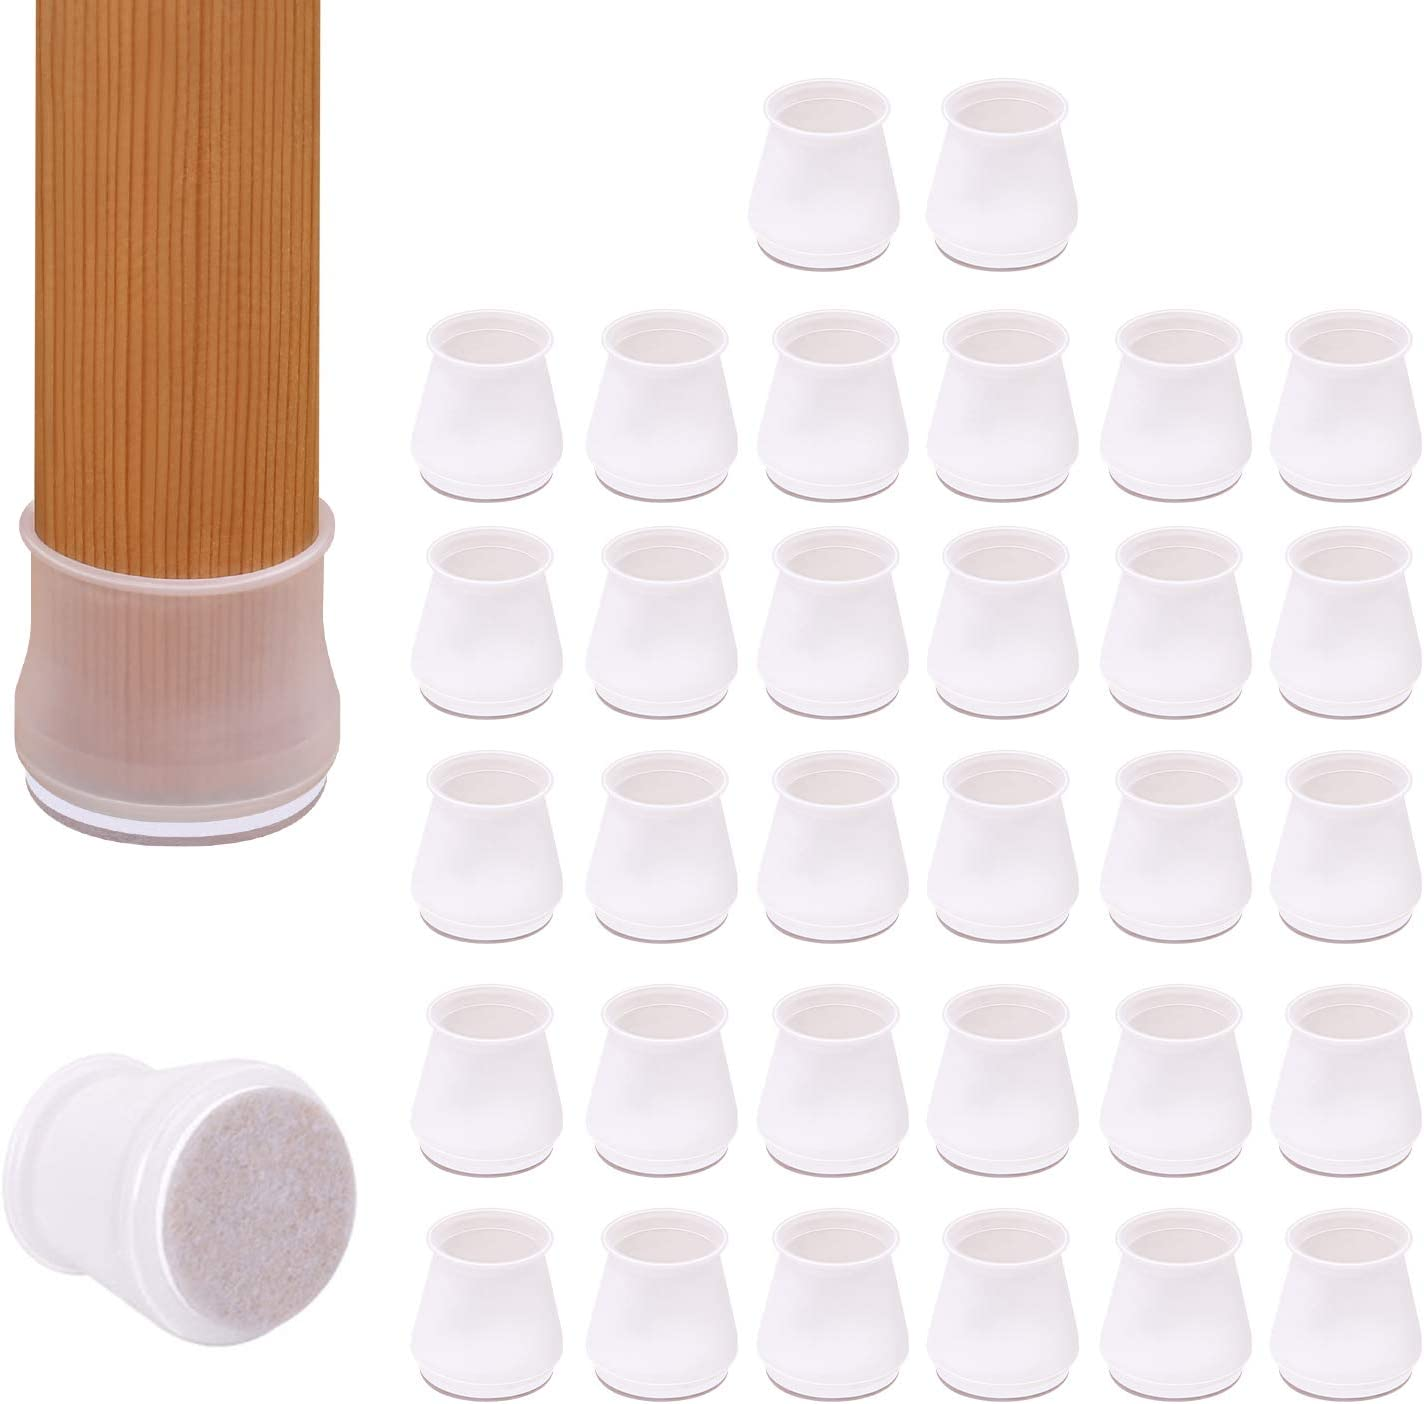 AIRUJIA Furniture Silicone Protection Cover, 32Pack Round Chair Leg Floor Protectors, Chair Socks Furniture Table Feet Cups with Felt Pads Beneath, Fits 3/4